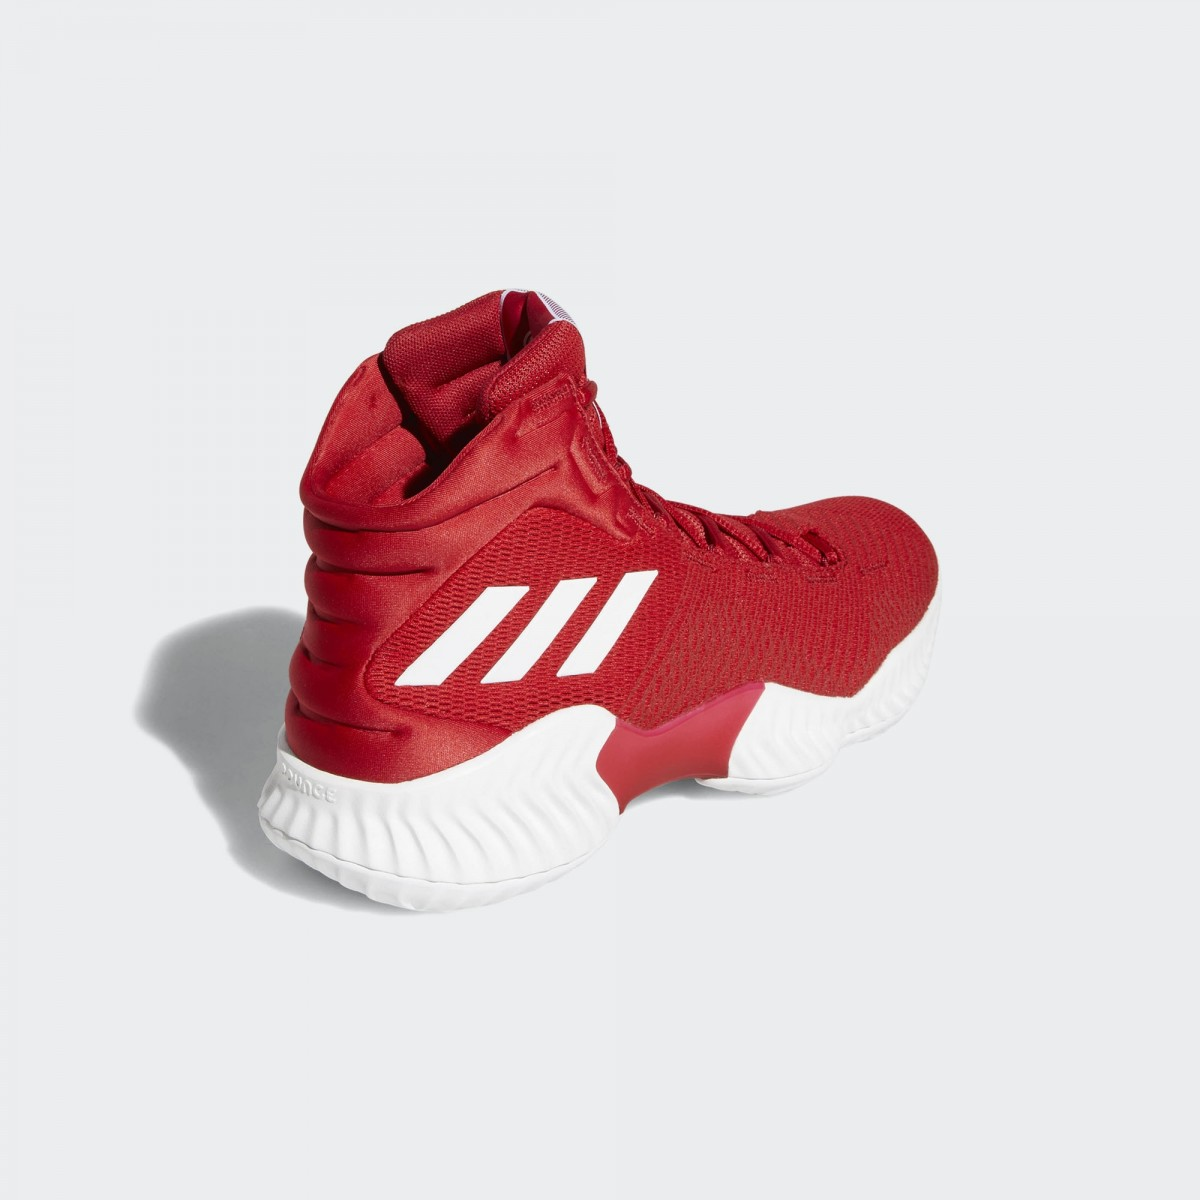 ADIDAS Pro Bounce 2018 'Red' AH2663